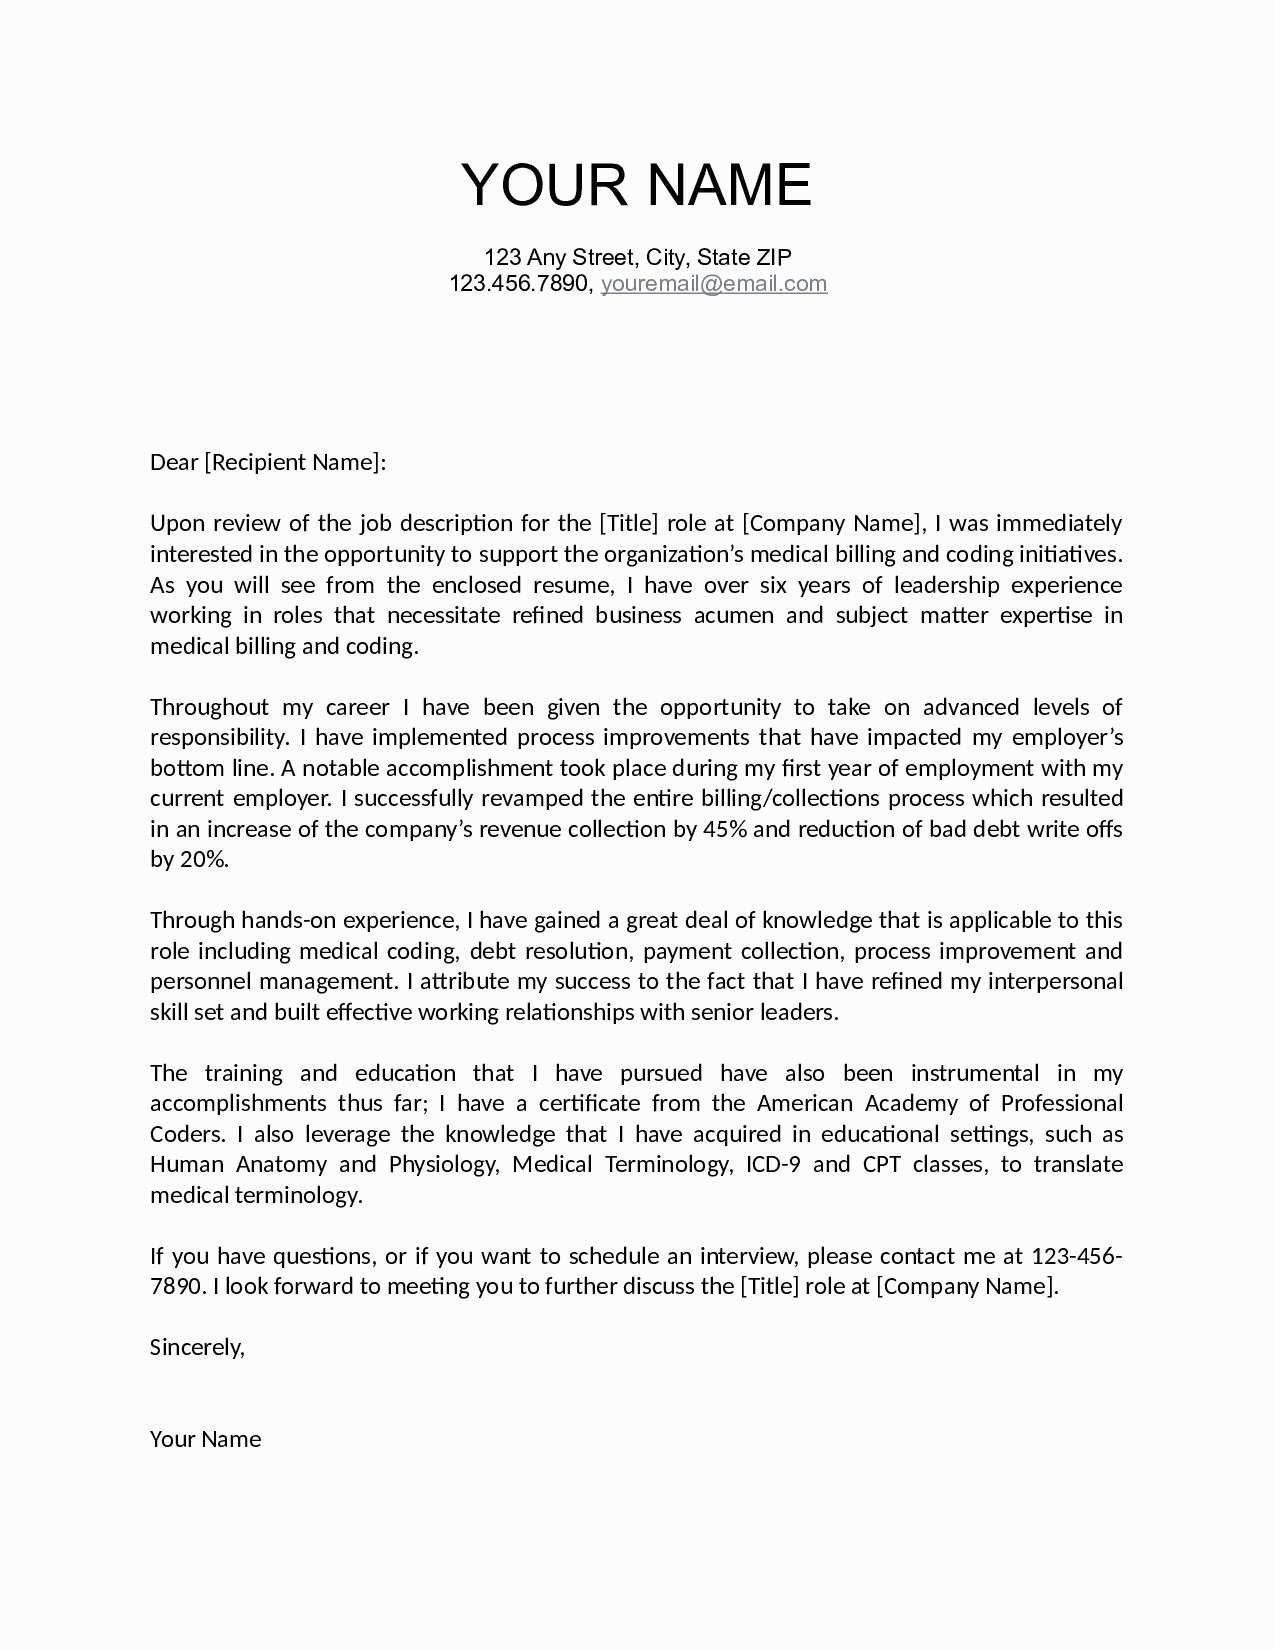 paid assessment letter template Collection-official offer letter template 4-c